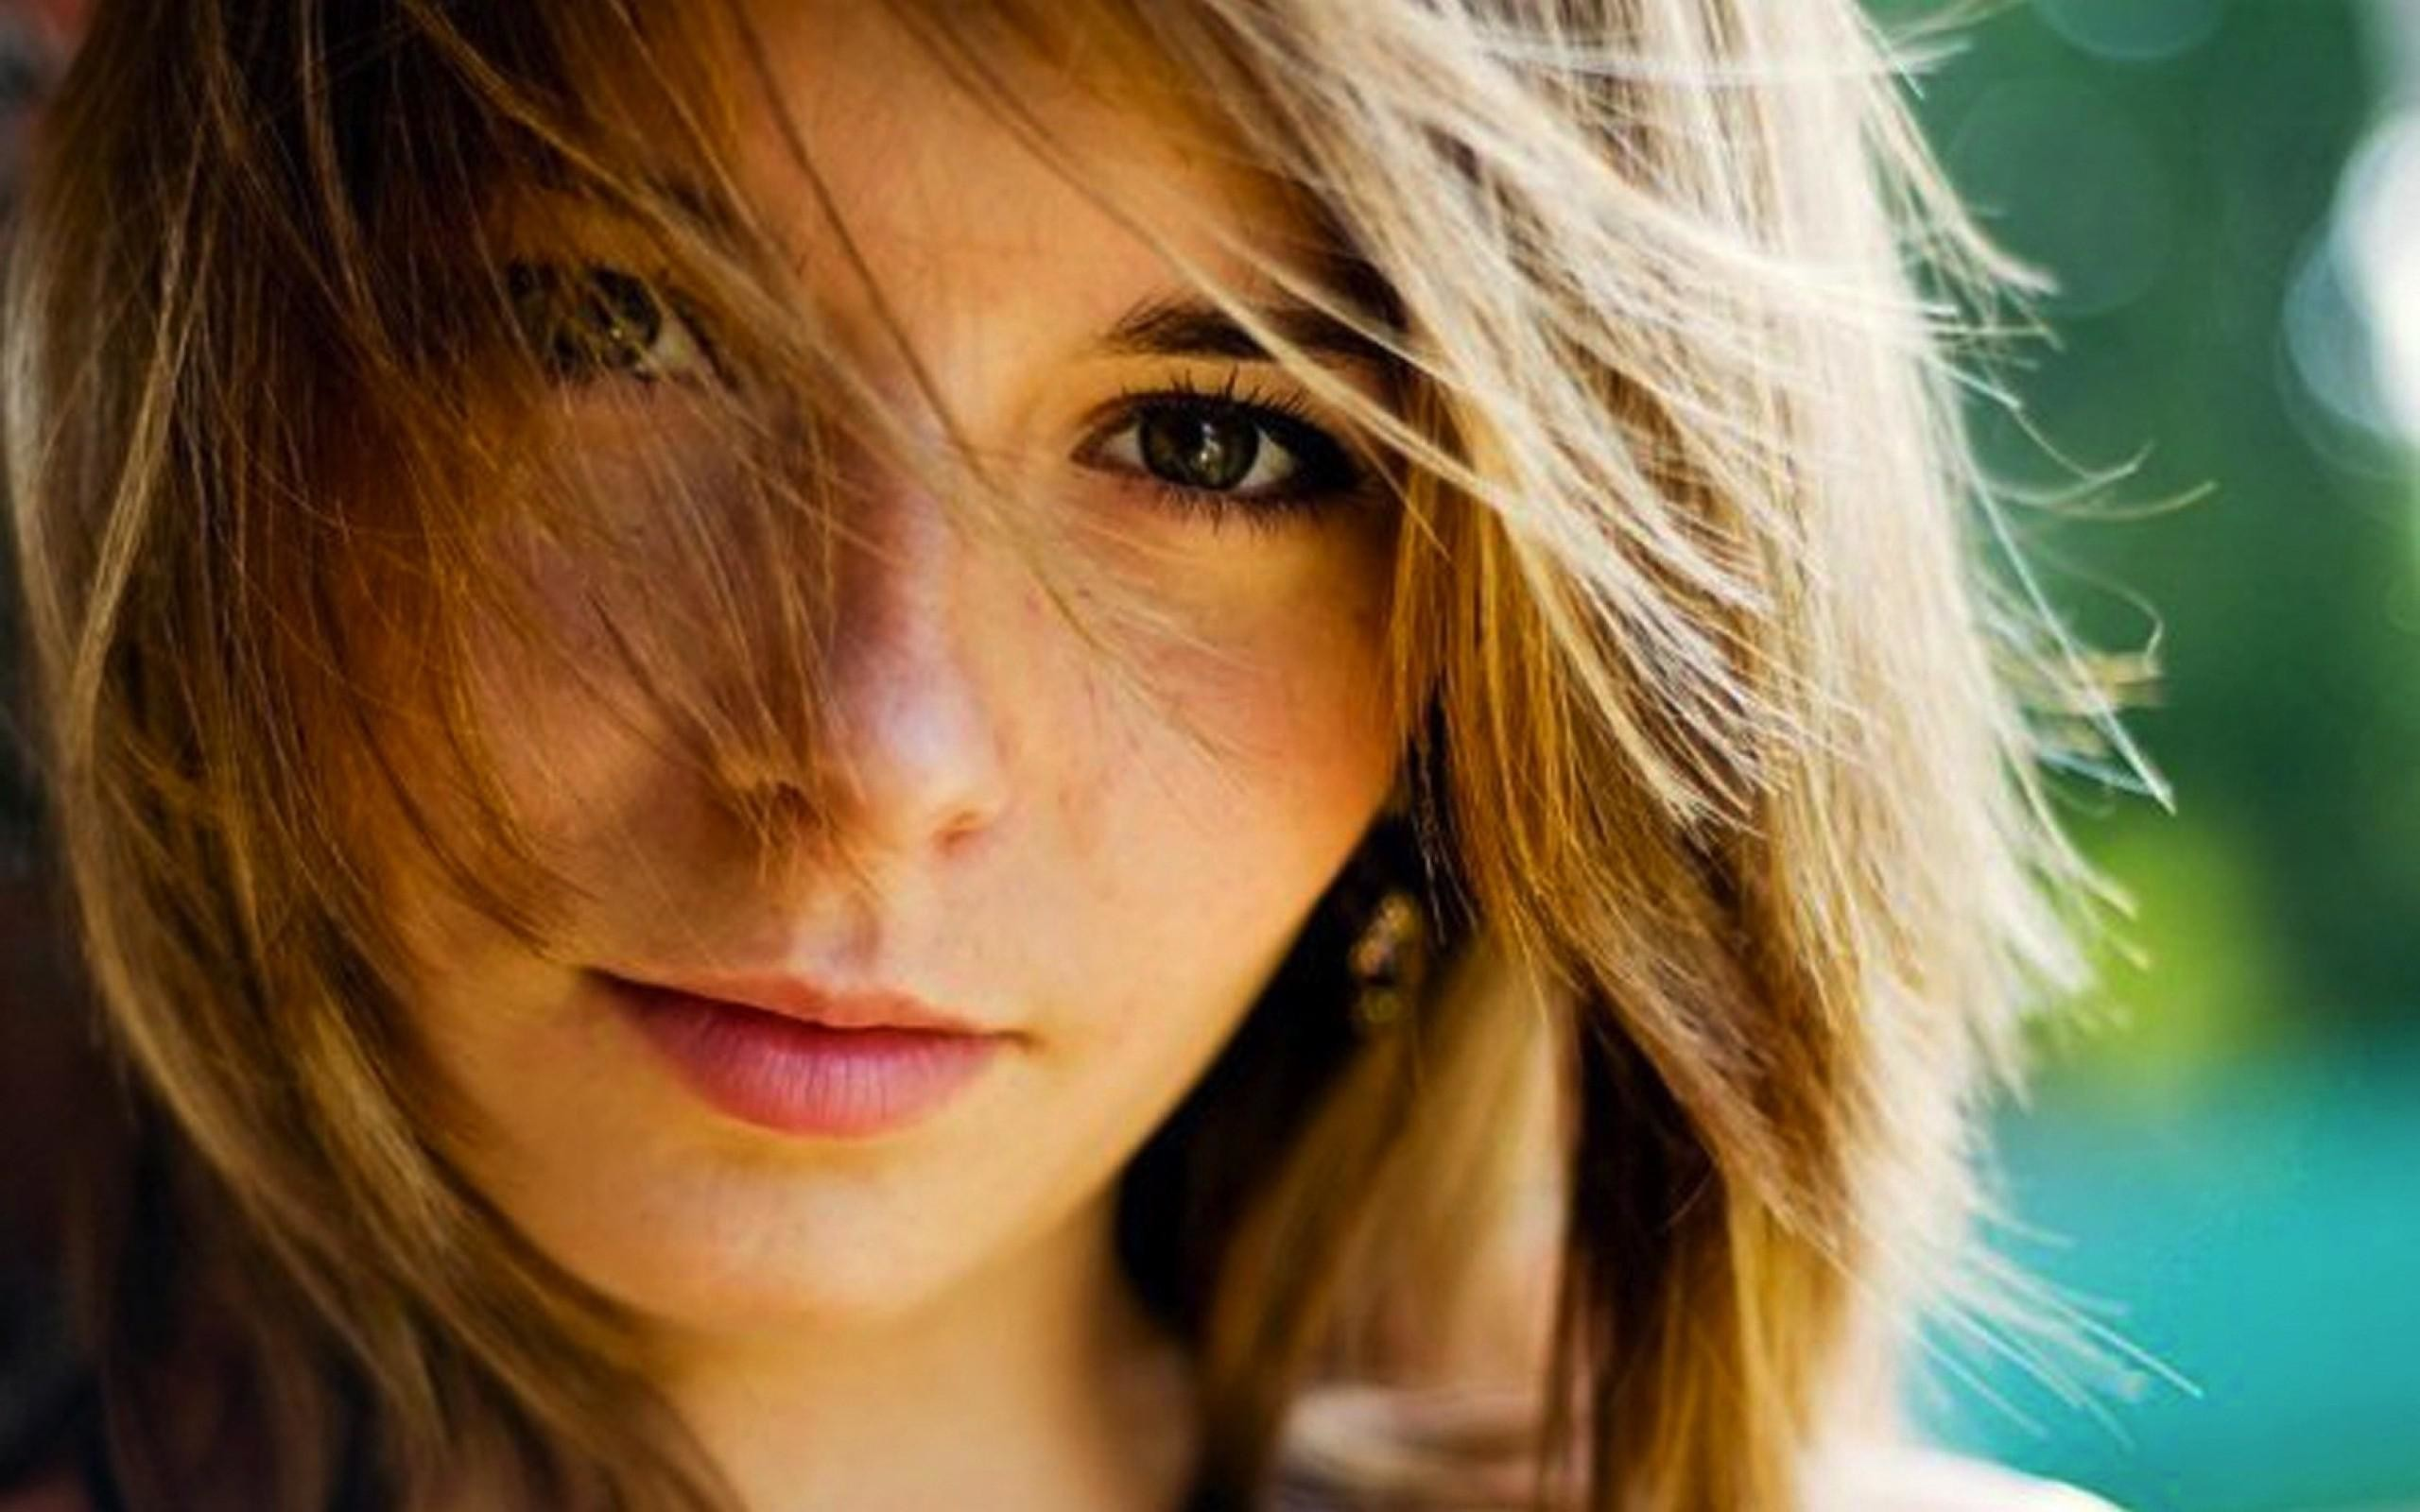 Res: 2560x1600, HD Widescreen Pretty Girl Photos 0.24 Mb, Wallpapers and Pictures –  download free